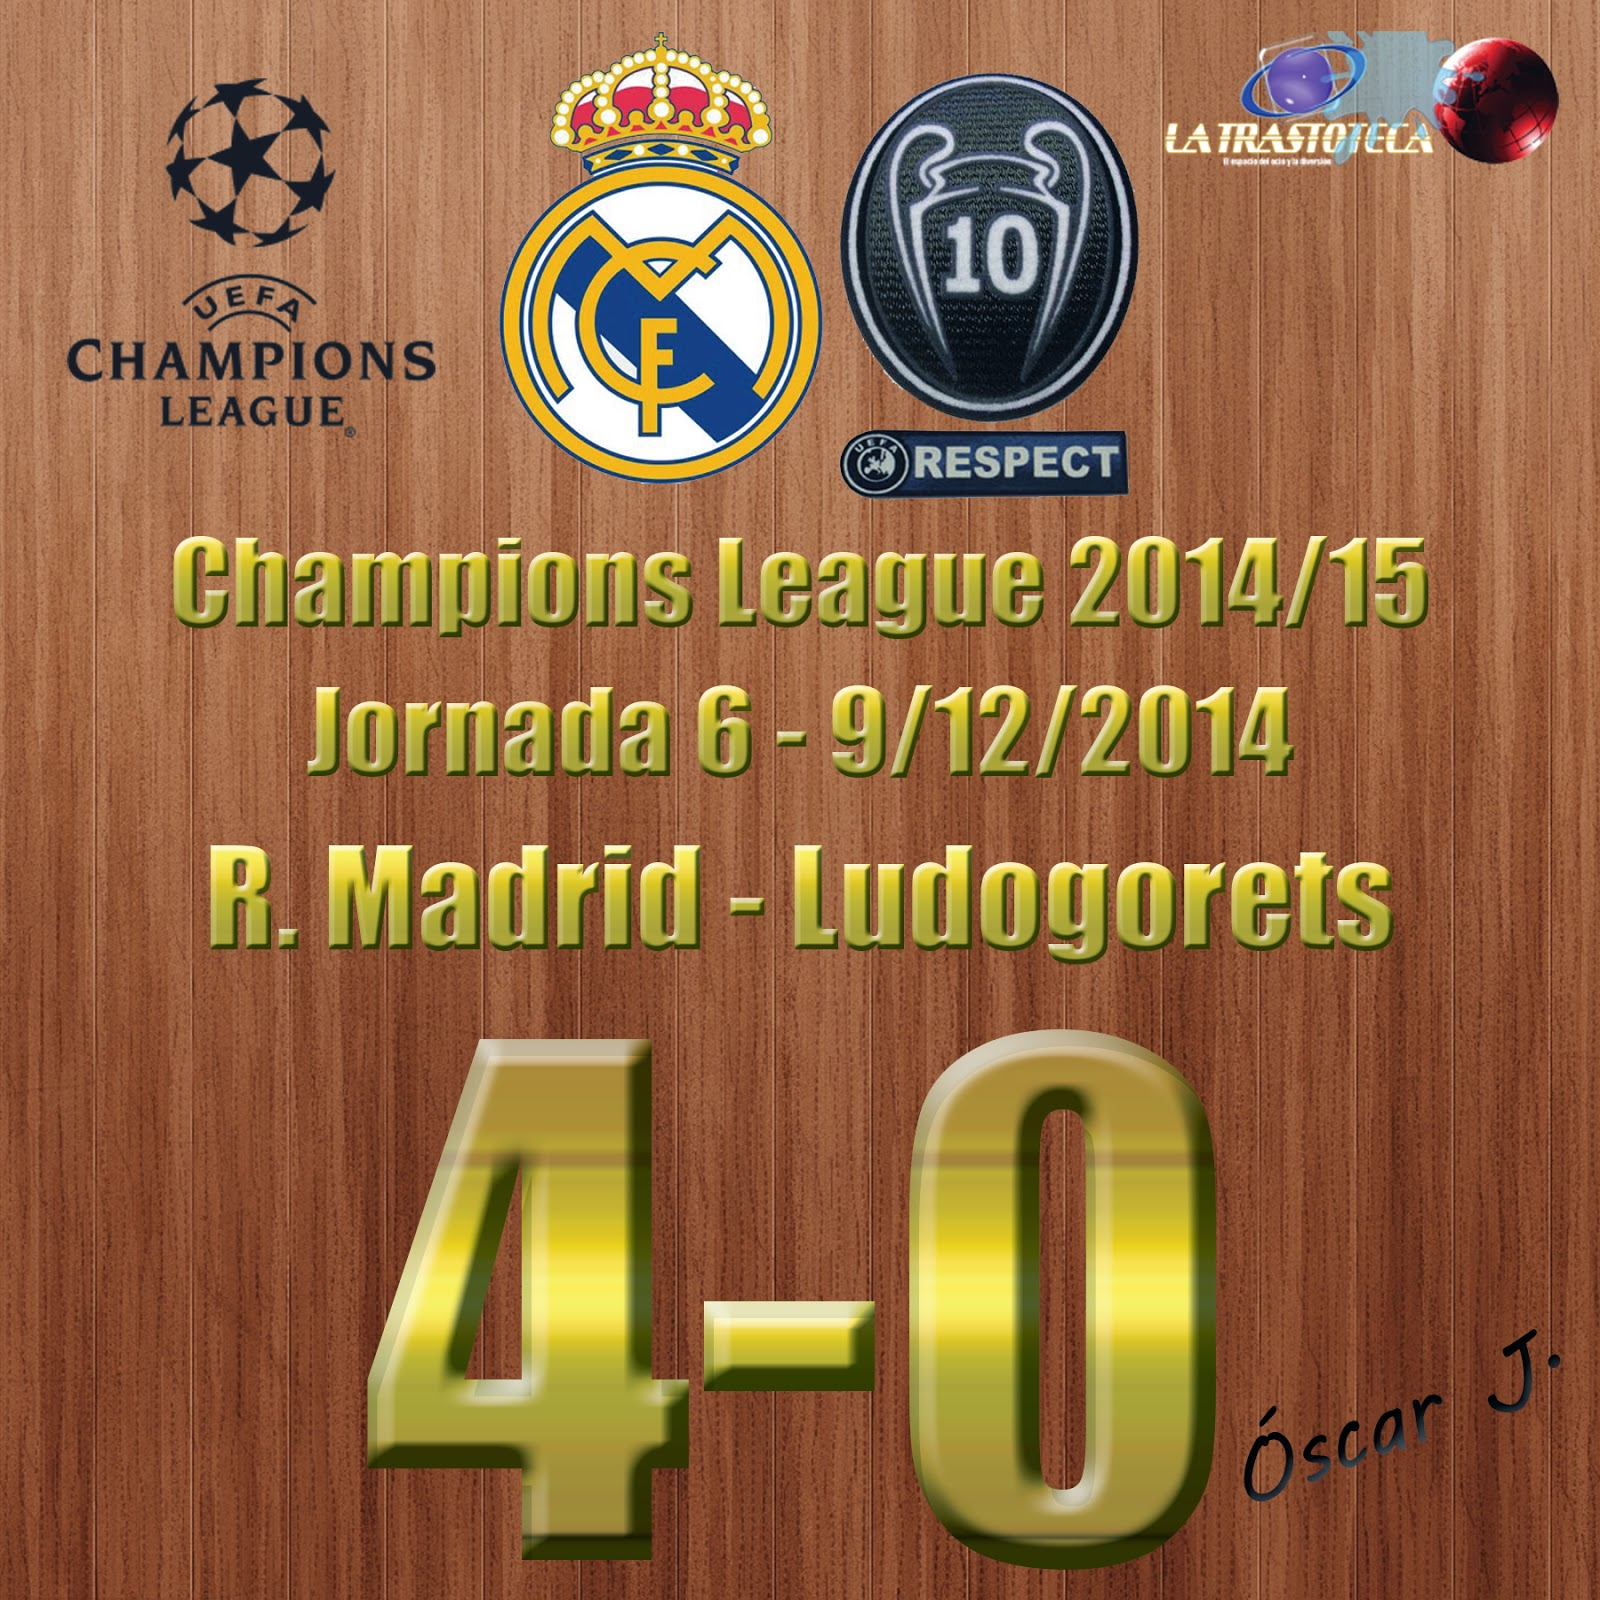 Gareth Bale (2-0) - Real Madrid 4-0 Ludogorets - Champions League 2014/15 - Jornada 6 - (9/12/2014)